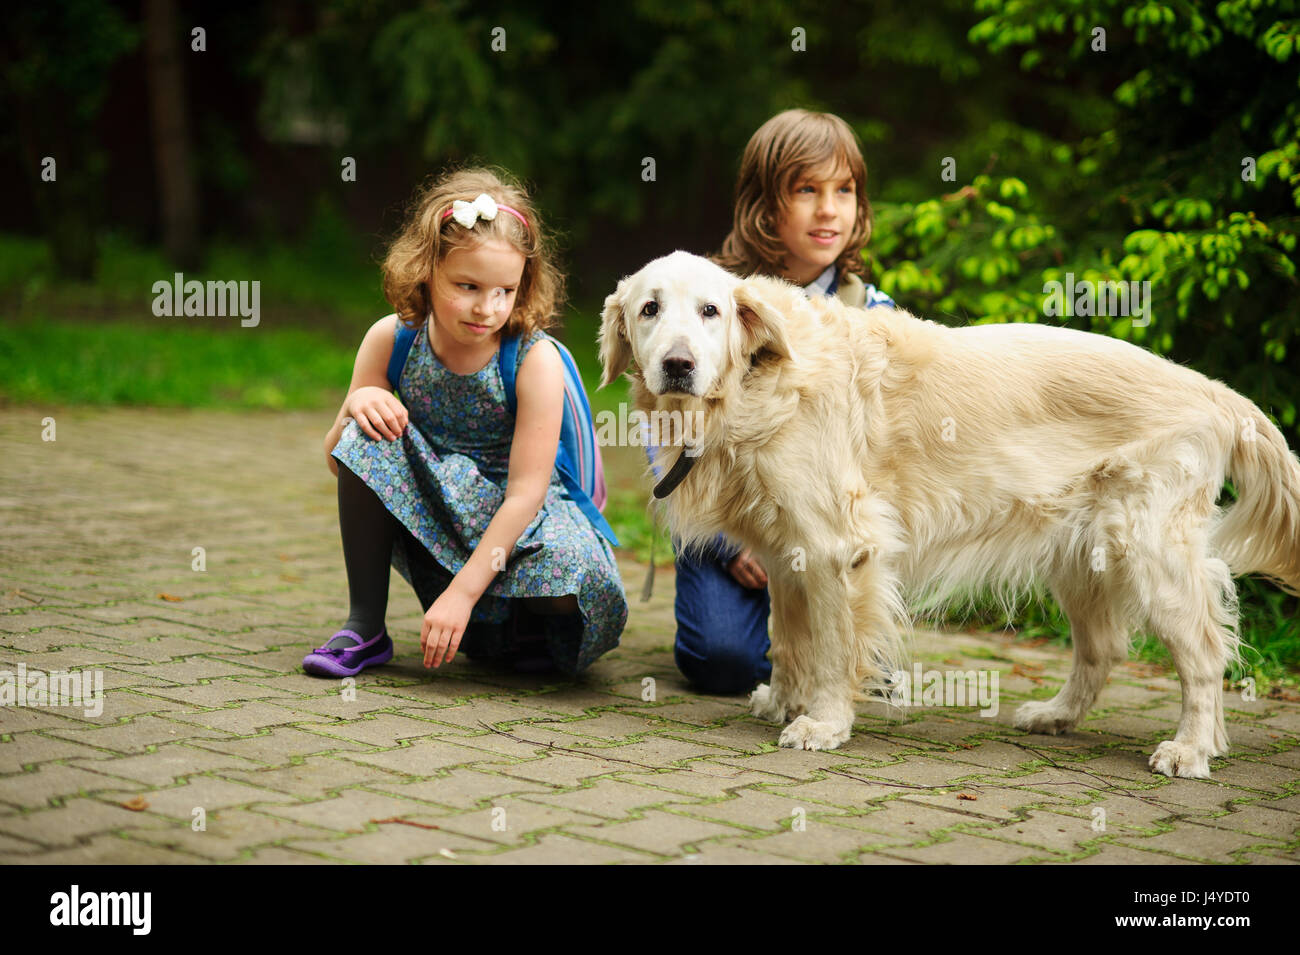 Little schoolchildren meet on the way to school a large dog. Good-natured retriever drew the children's attention. - Stock Image